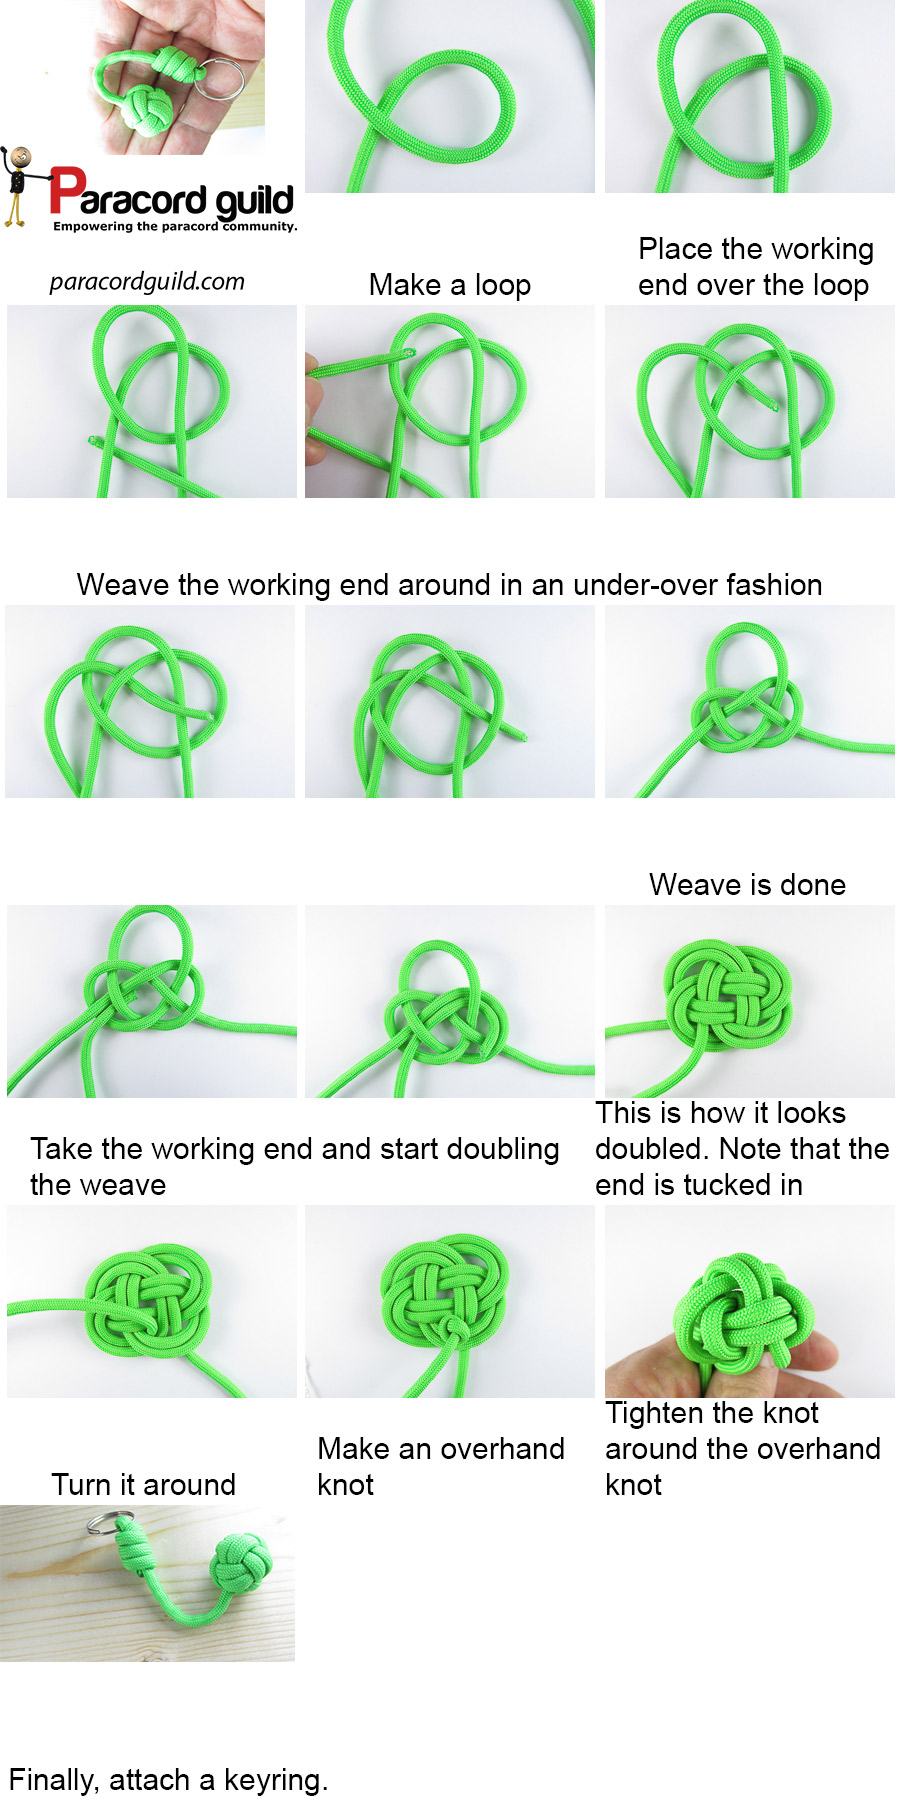 How to tie a paracord keychain paracord guild for How to make a keychain out of paracord